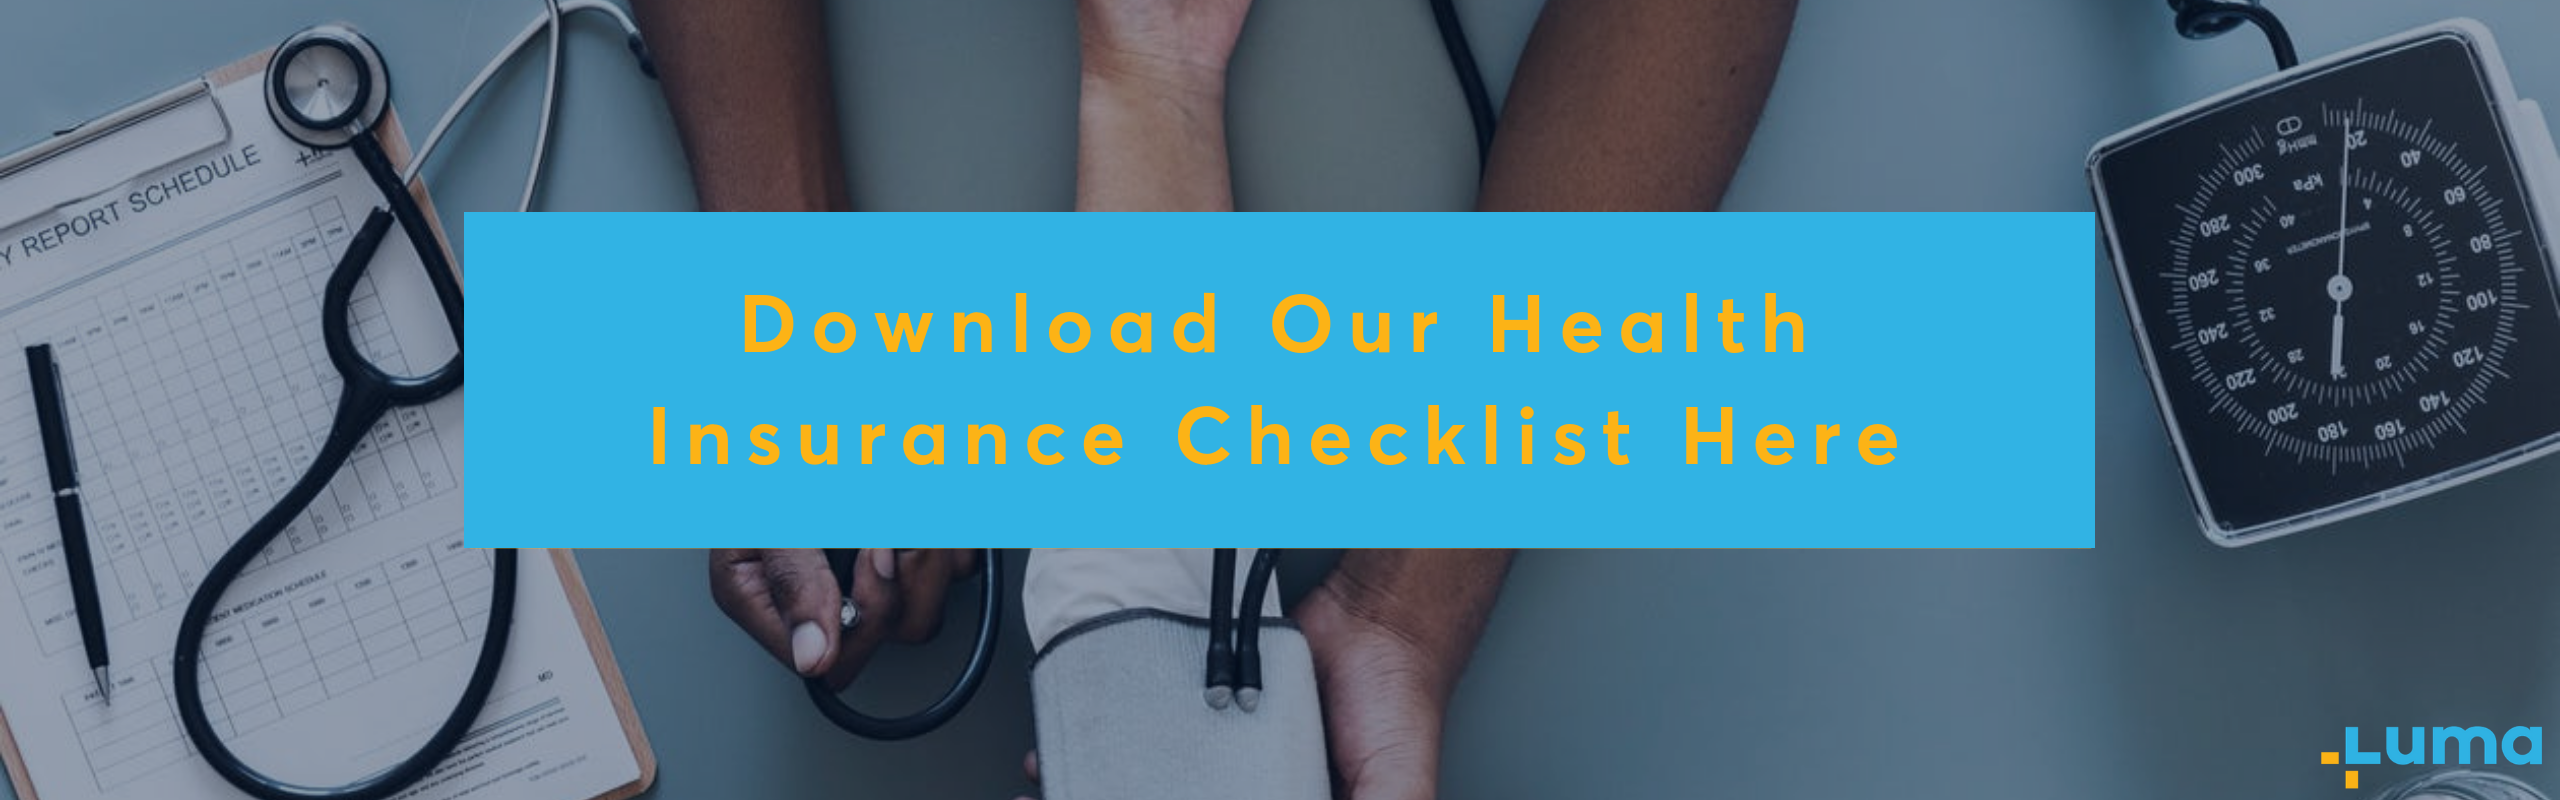 health insurance checklist